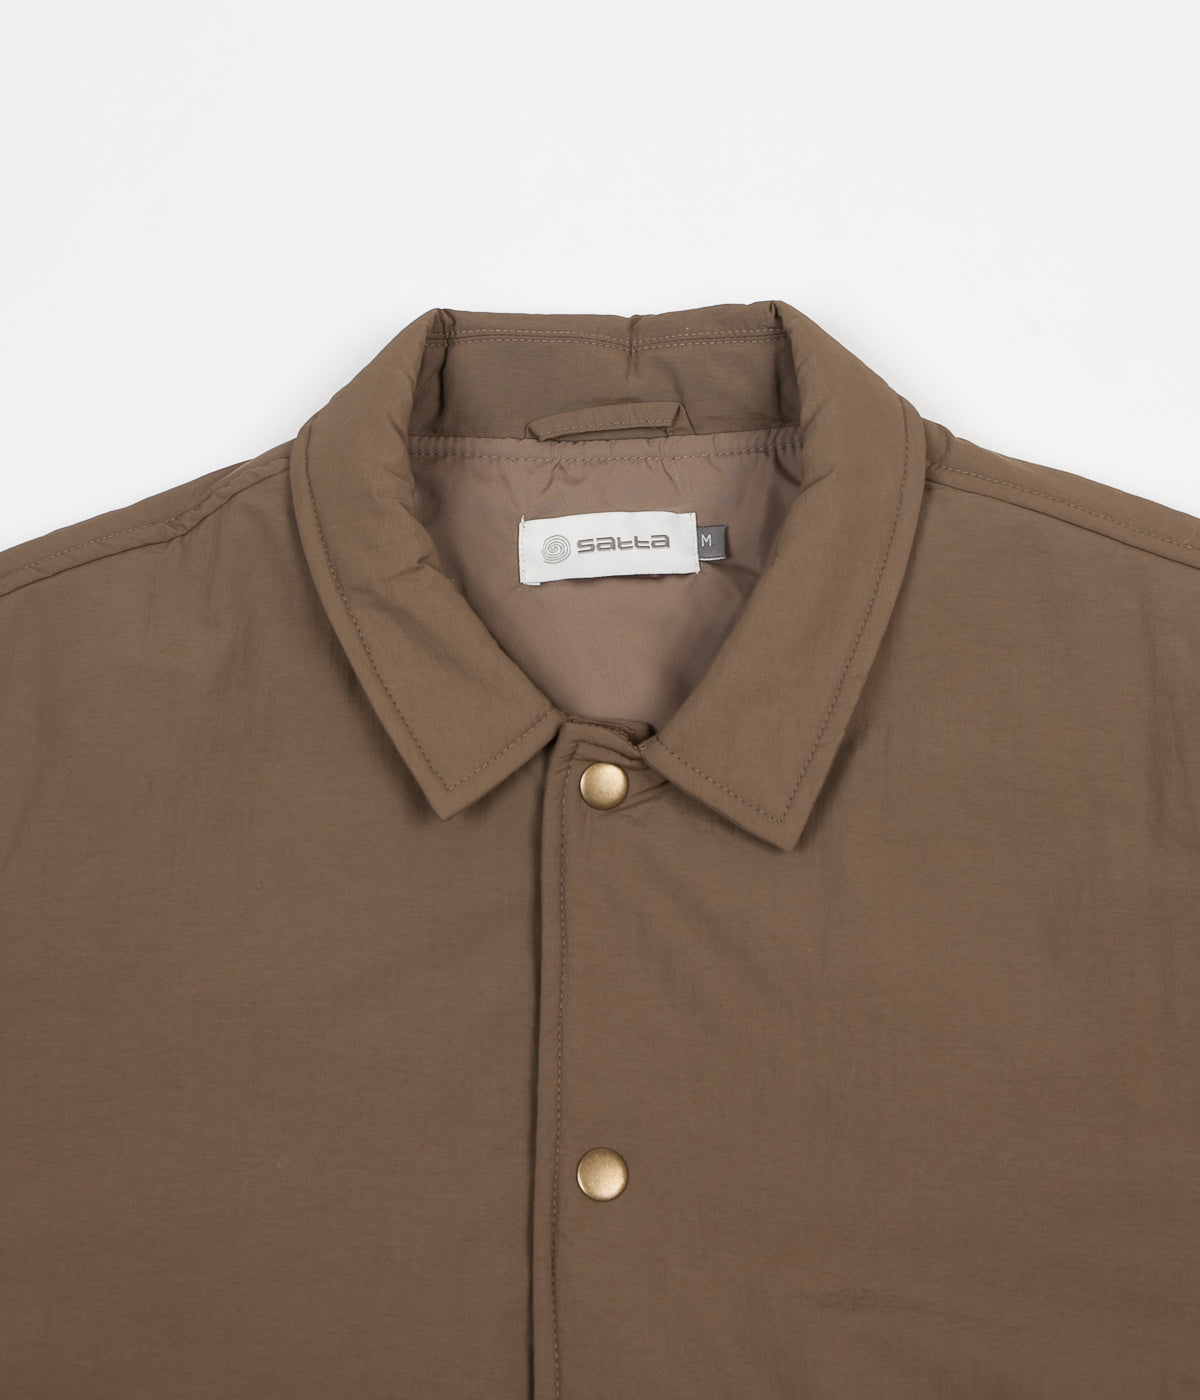 Satta Insulated Grounds Jacket - Dusty Brown